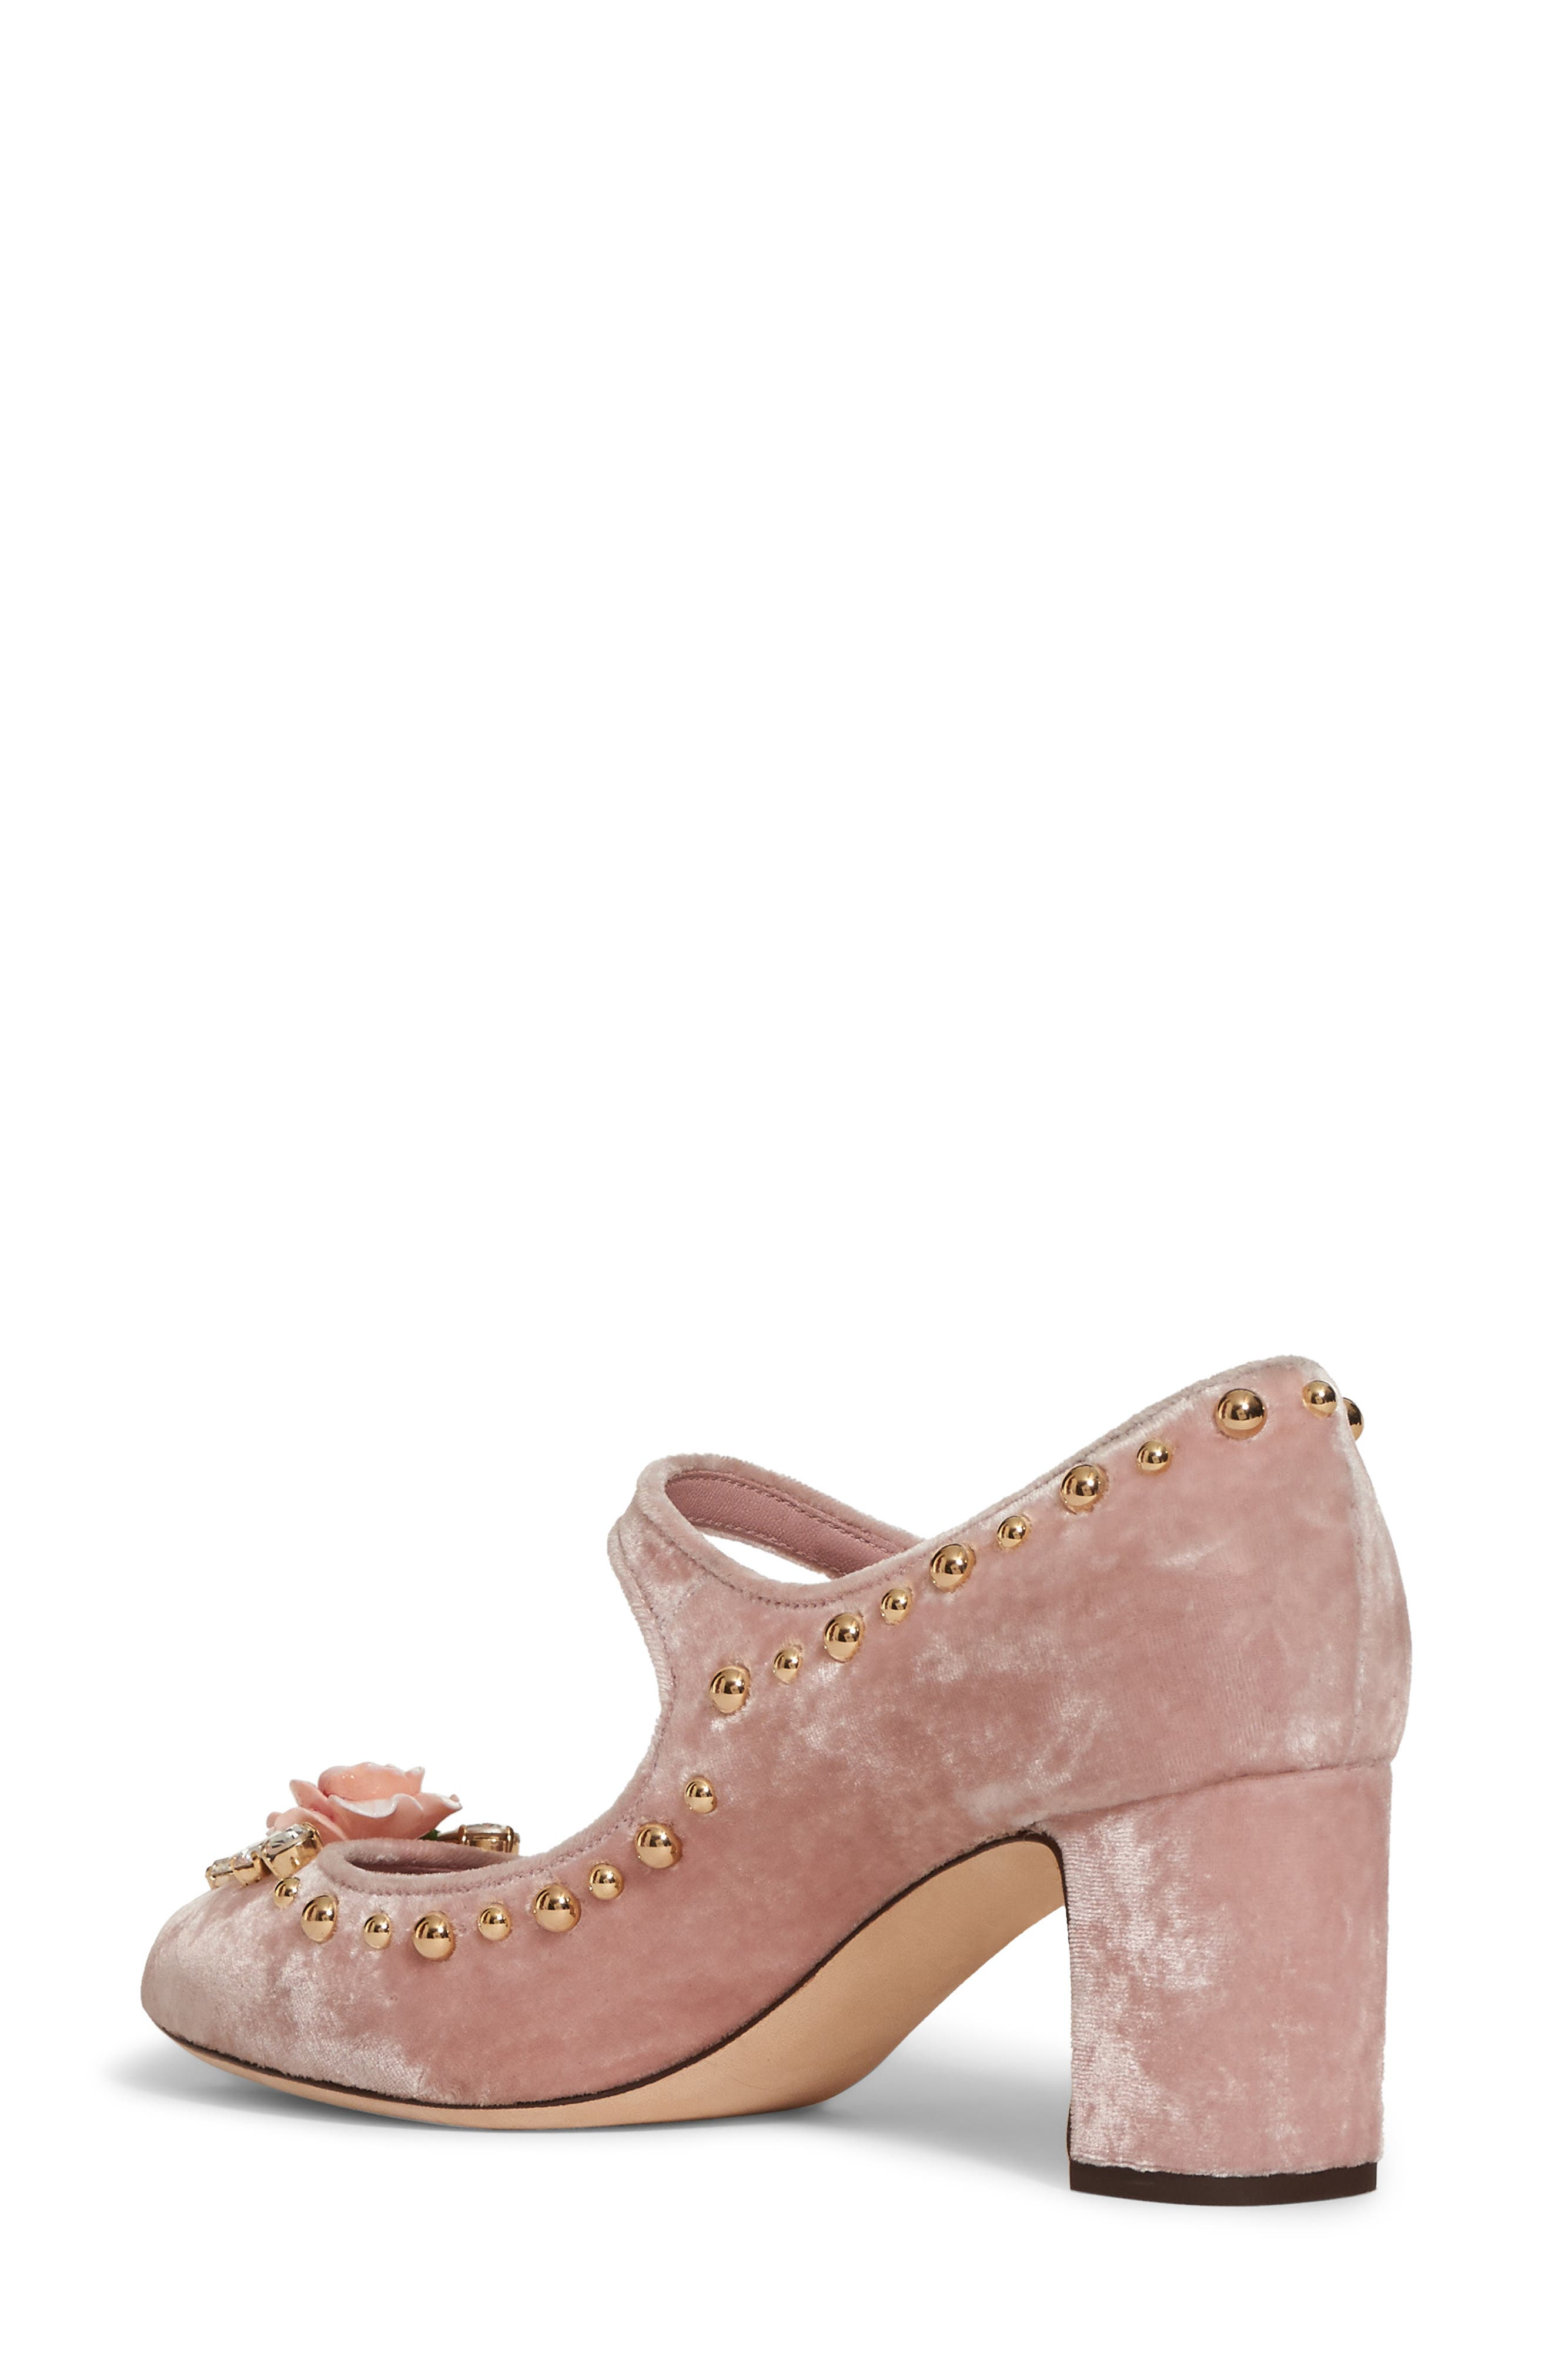 Rose Mary Jane Pump,                             Alternate thumbnail 2, color,                             Pink